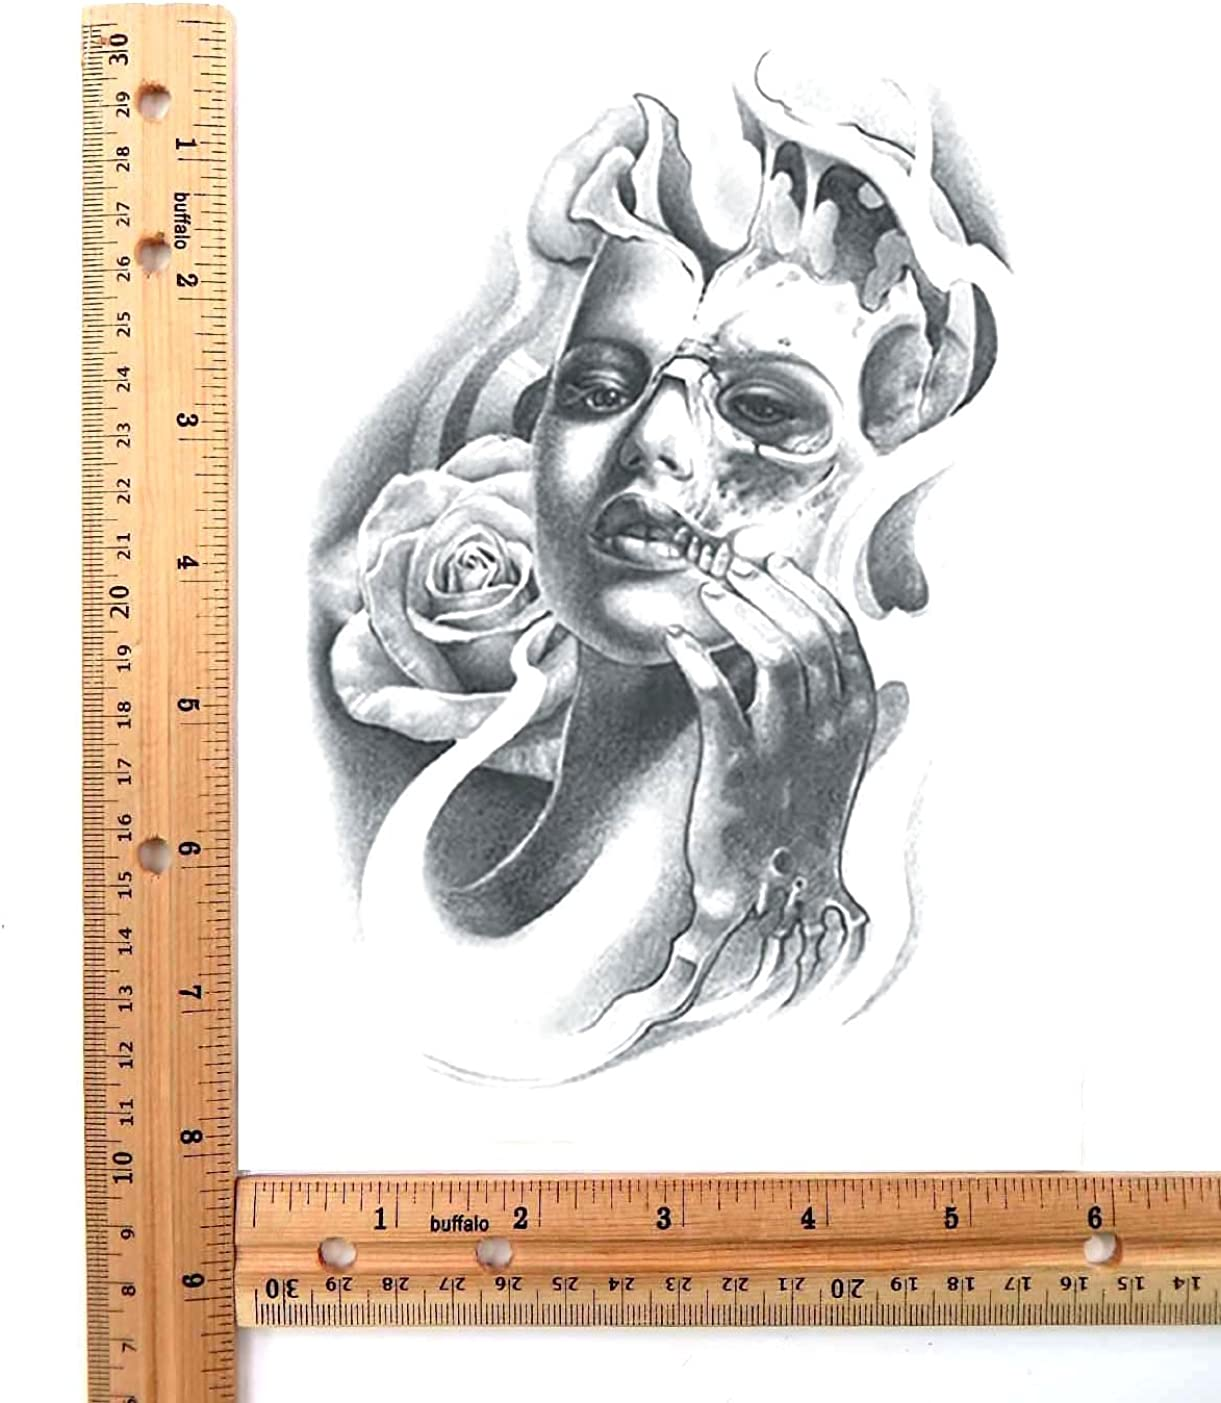 Halloween sugar skull large 8.25 half-sleeve arm tattoo Skin art waterproof